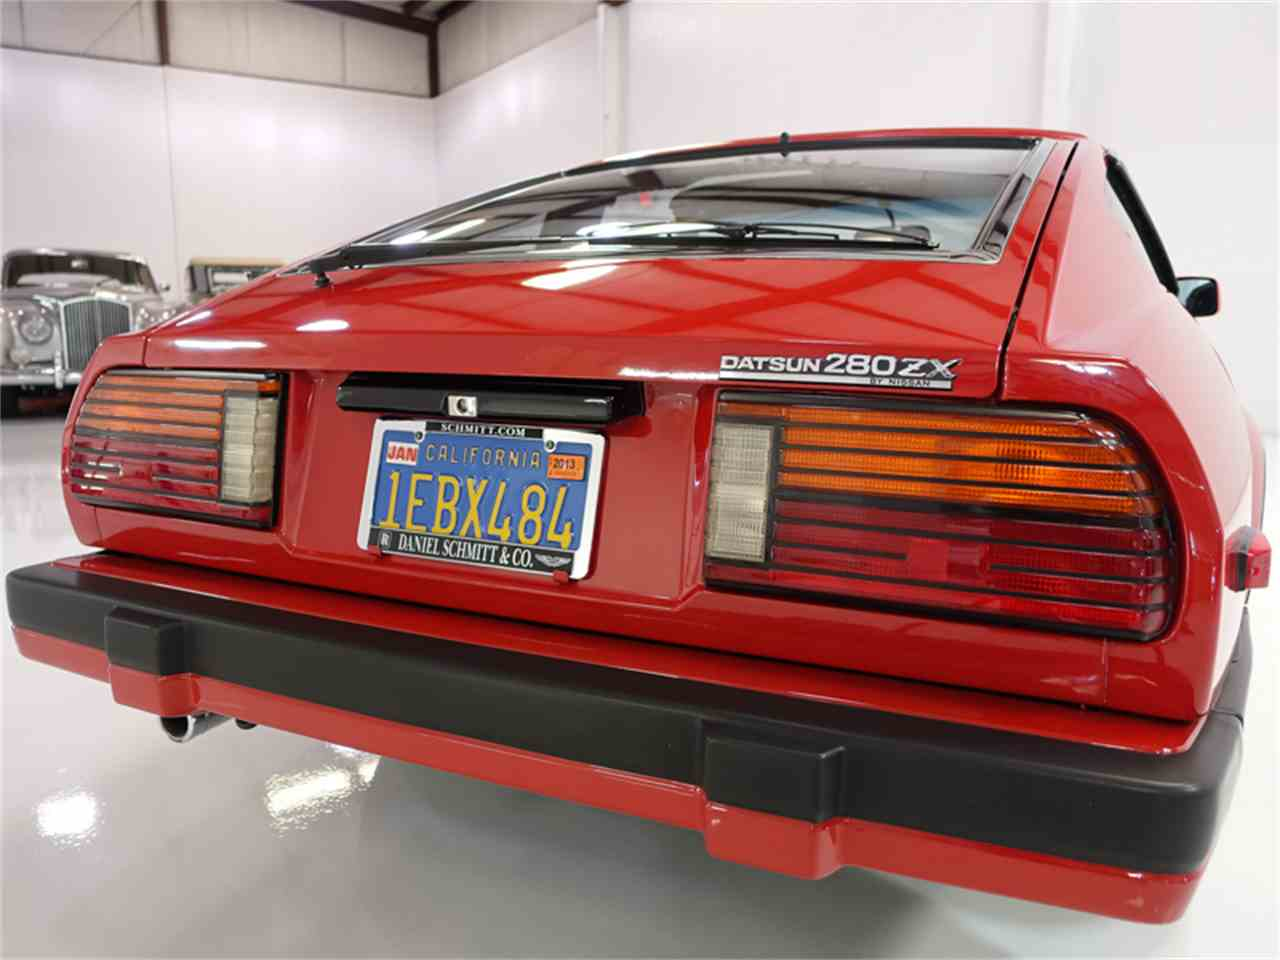 Large Picture of '82 280ZX located in St. Louis Missouri - $29,900.00 Offered by Daniel Schmitt & Co. - LF5S